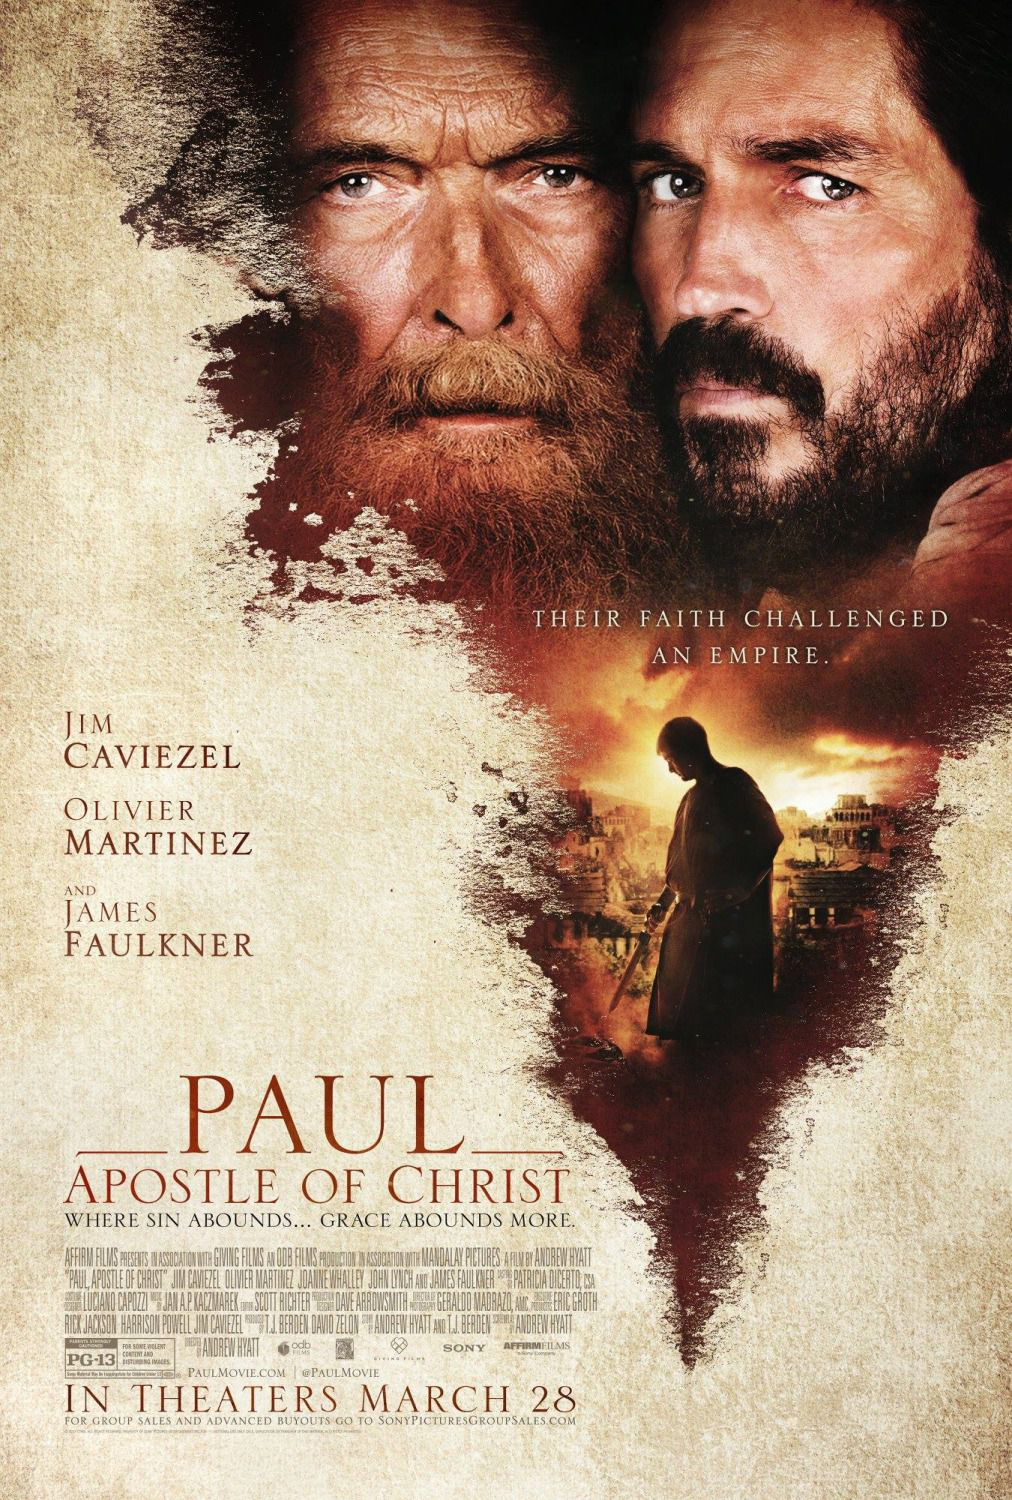 Paul Apostle of Christ - film poster 2018 - Apostolo Paolo